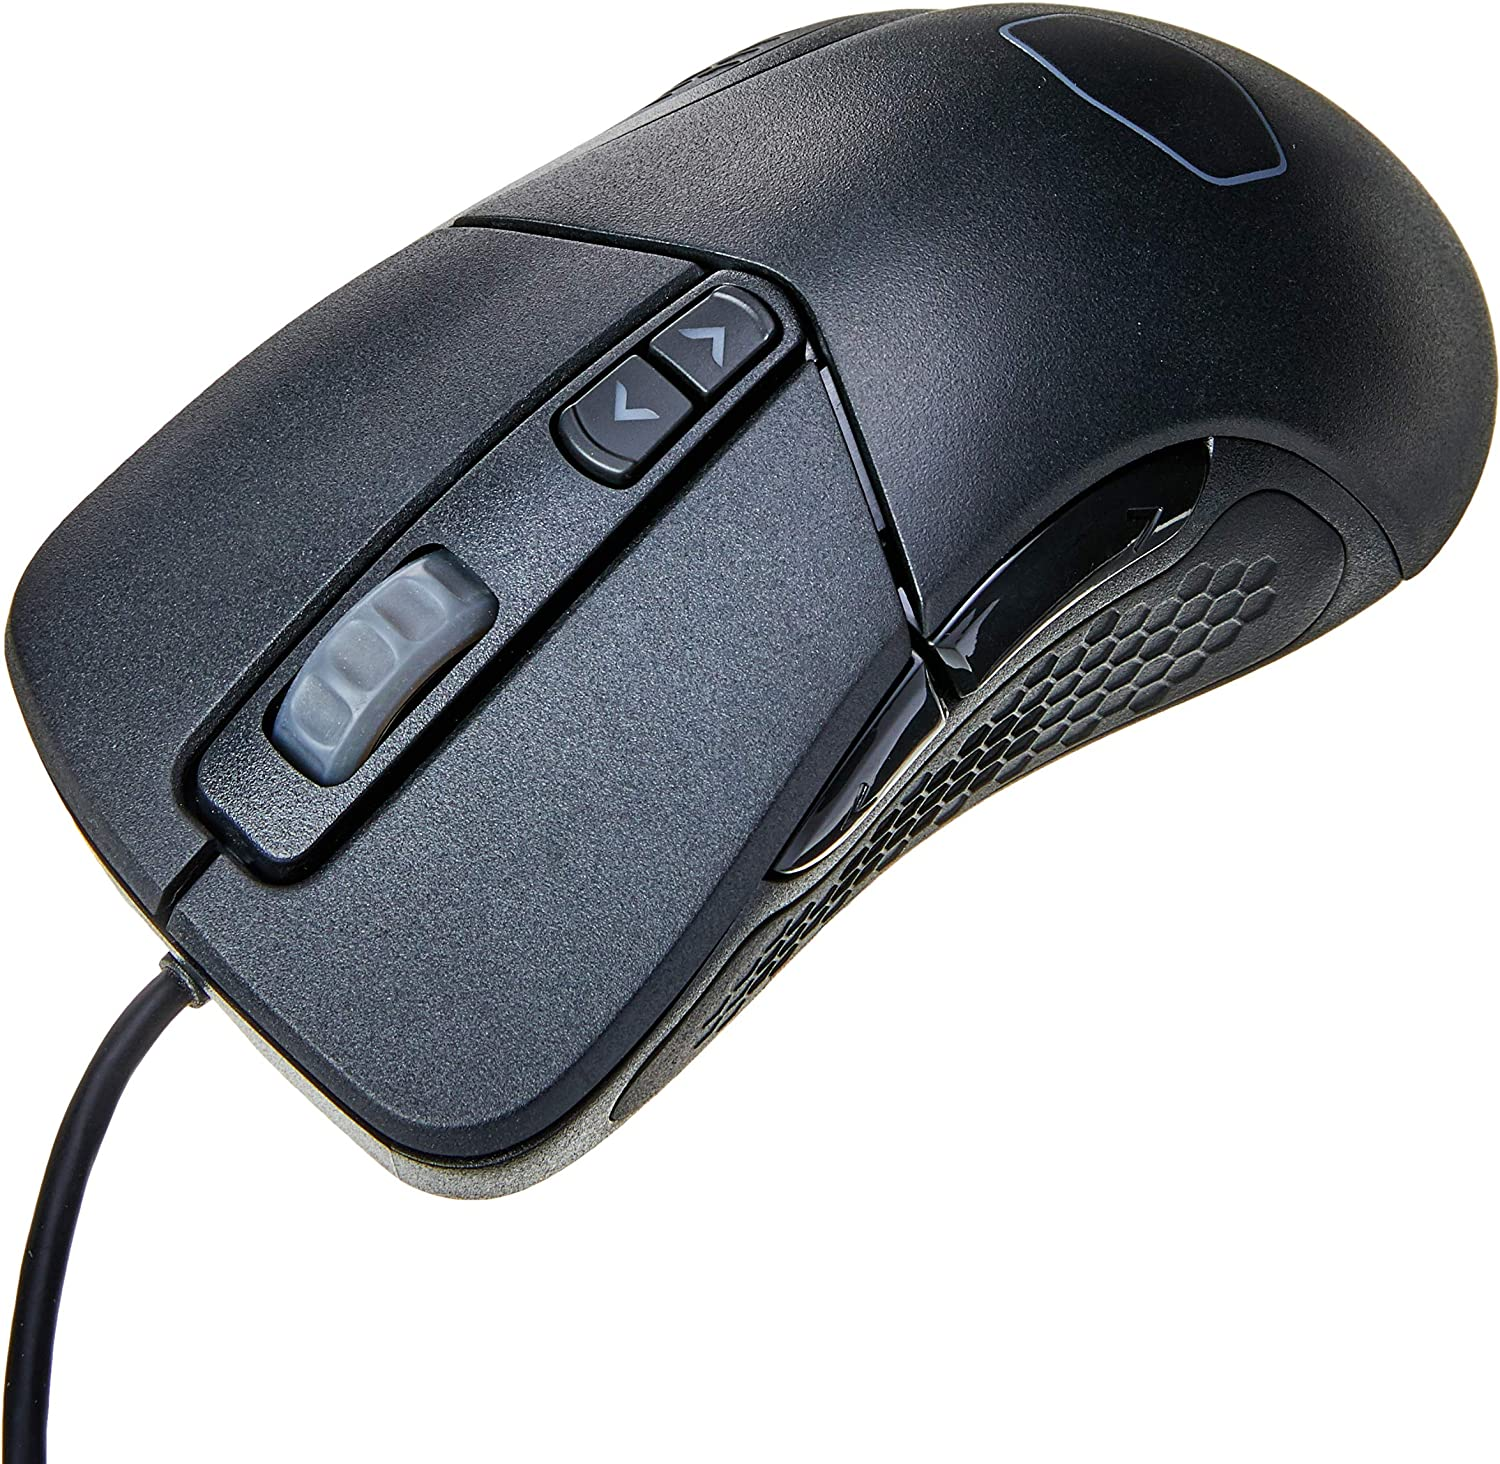 Optical Black USB Cooler Master Mouse 7 Buttons Right-Handed Wired